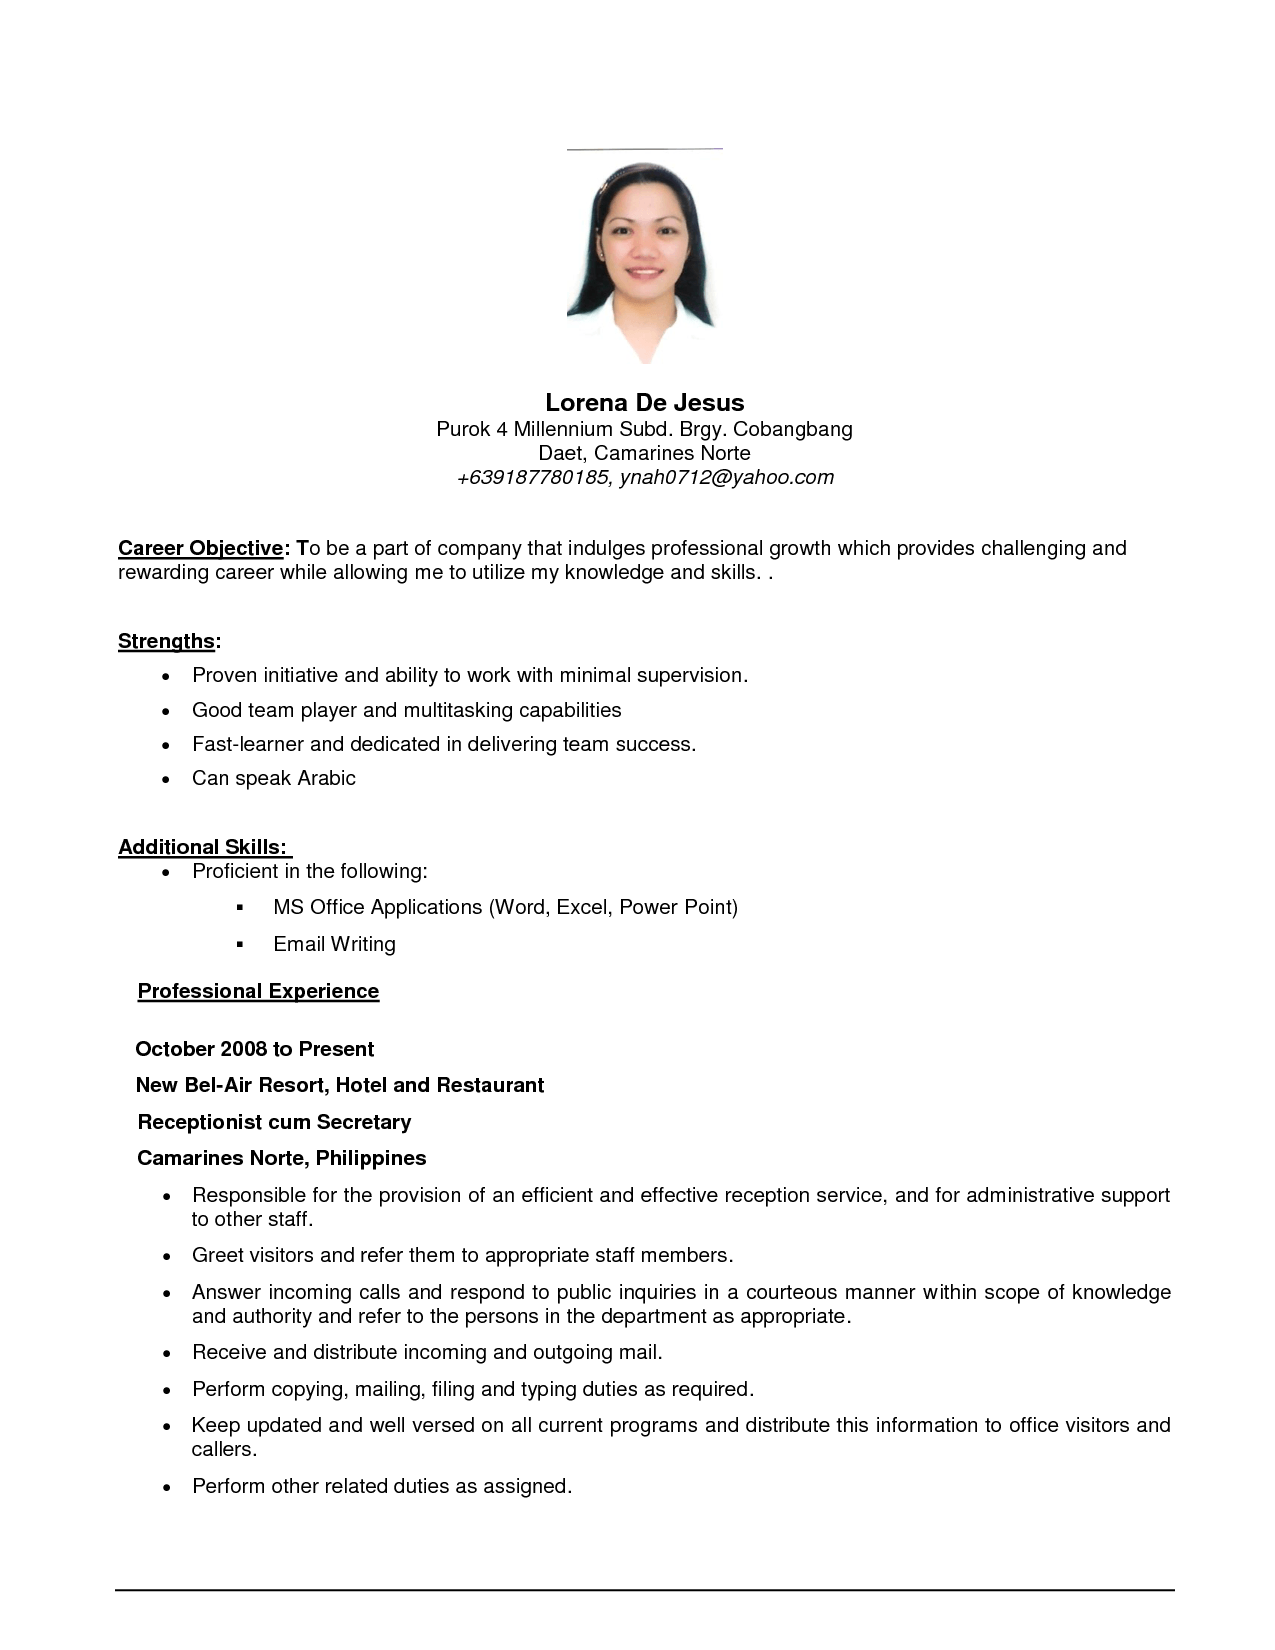 Career Objective Statement Examples Prepossessing Resume Examples Job Objective  Pinterest  Resume Examples Create .